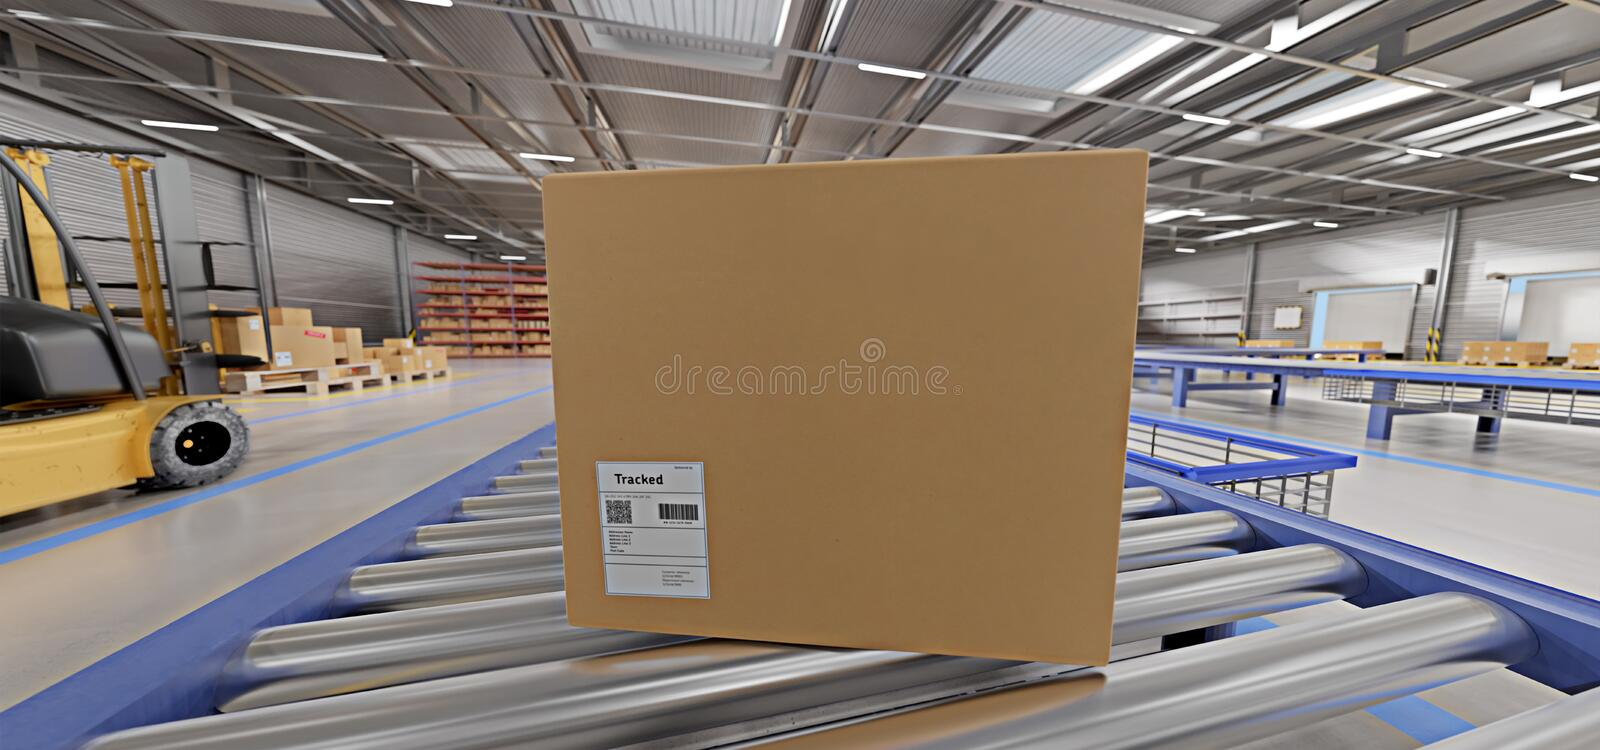 Warehouse goods stock background 3d rendering. View of a Warehouse goods stock background 3d rendering royalty free stock photography